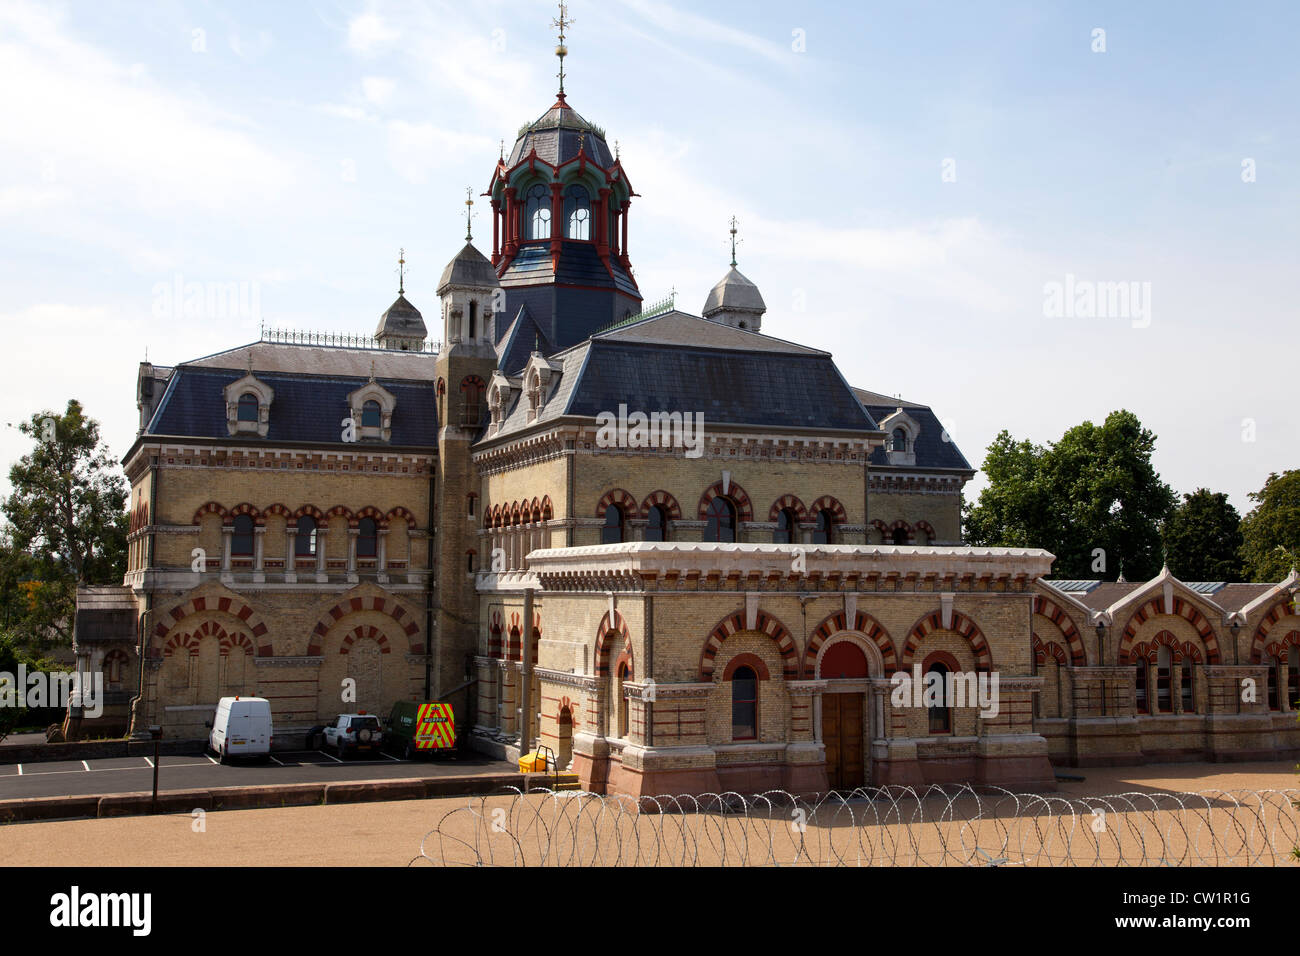 Abbey Mills Sewage Pumping Station, London, England, UK. - Stock Image